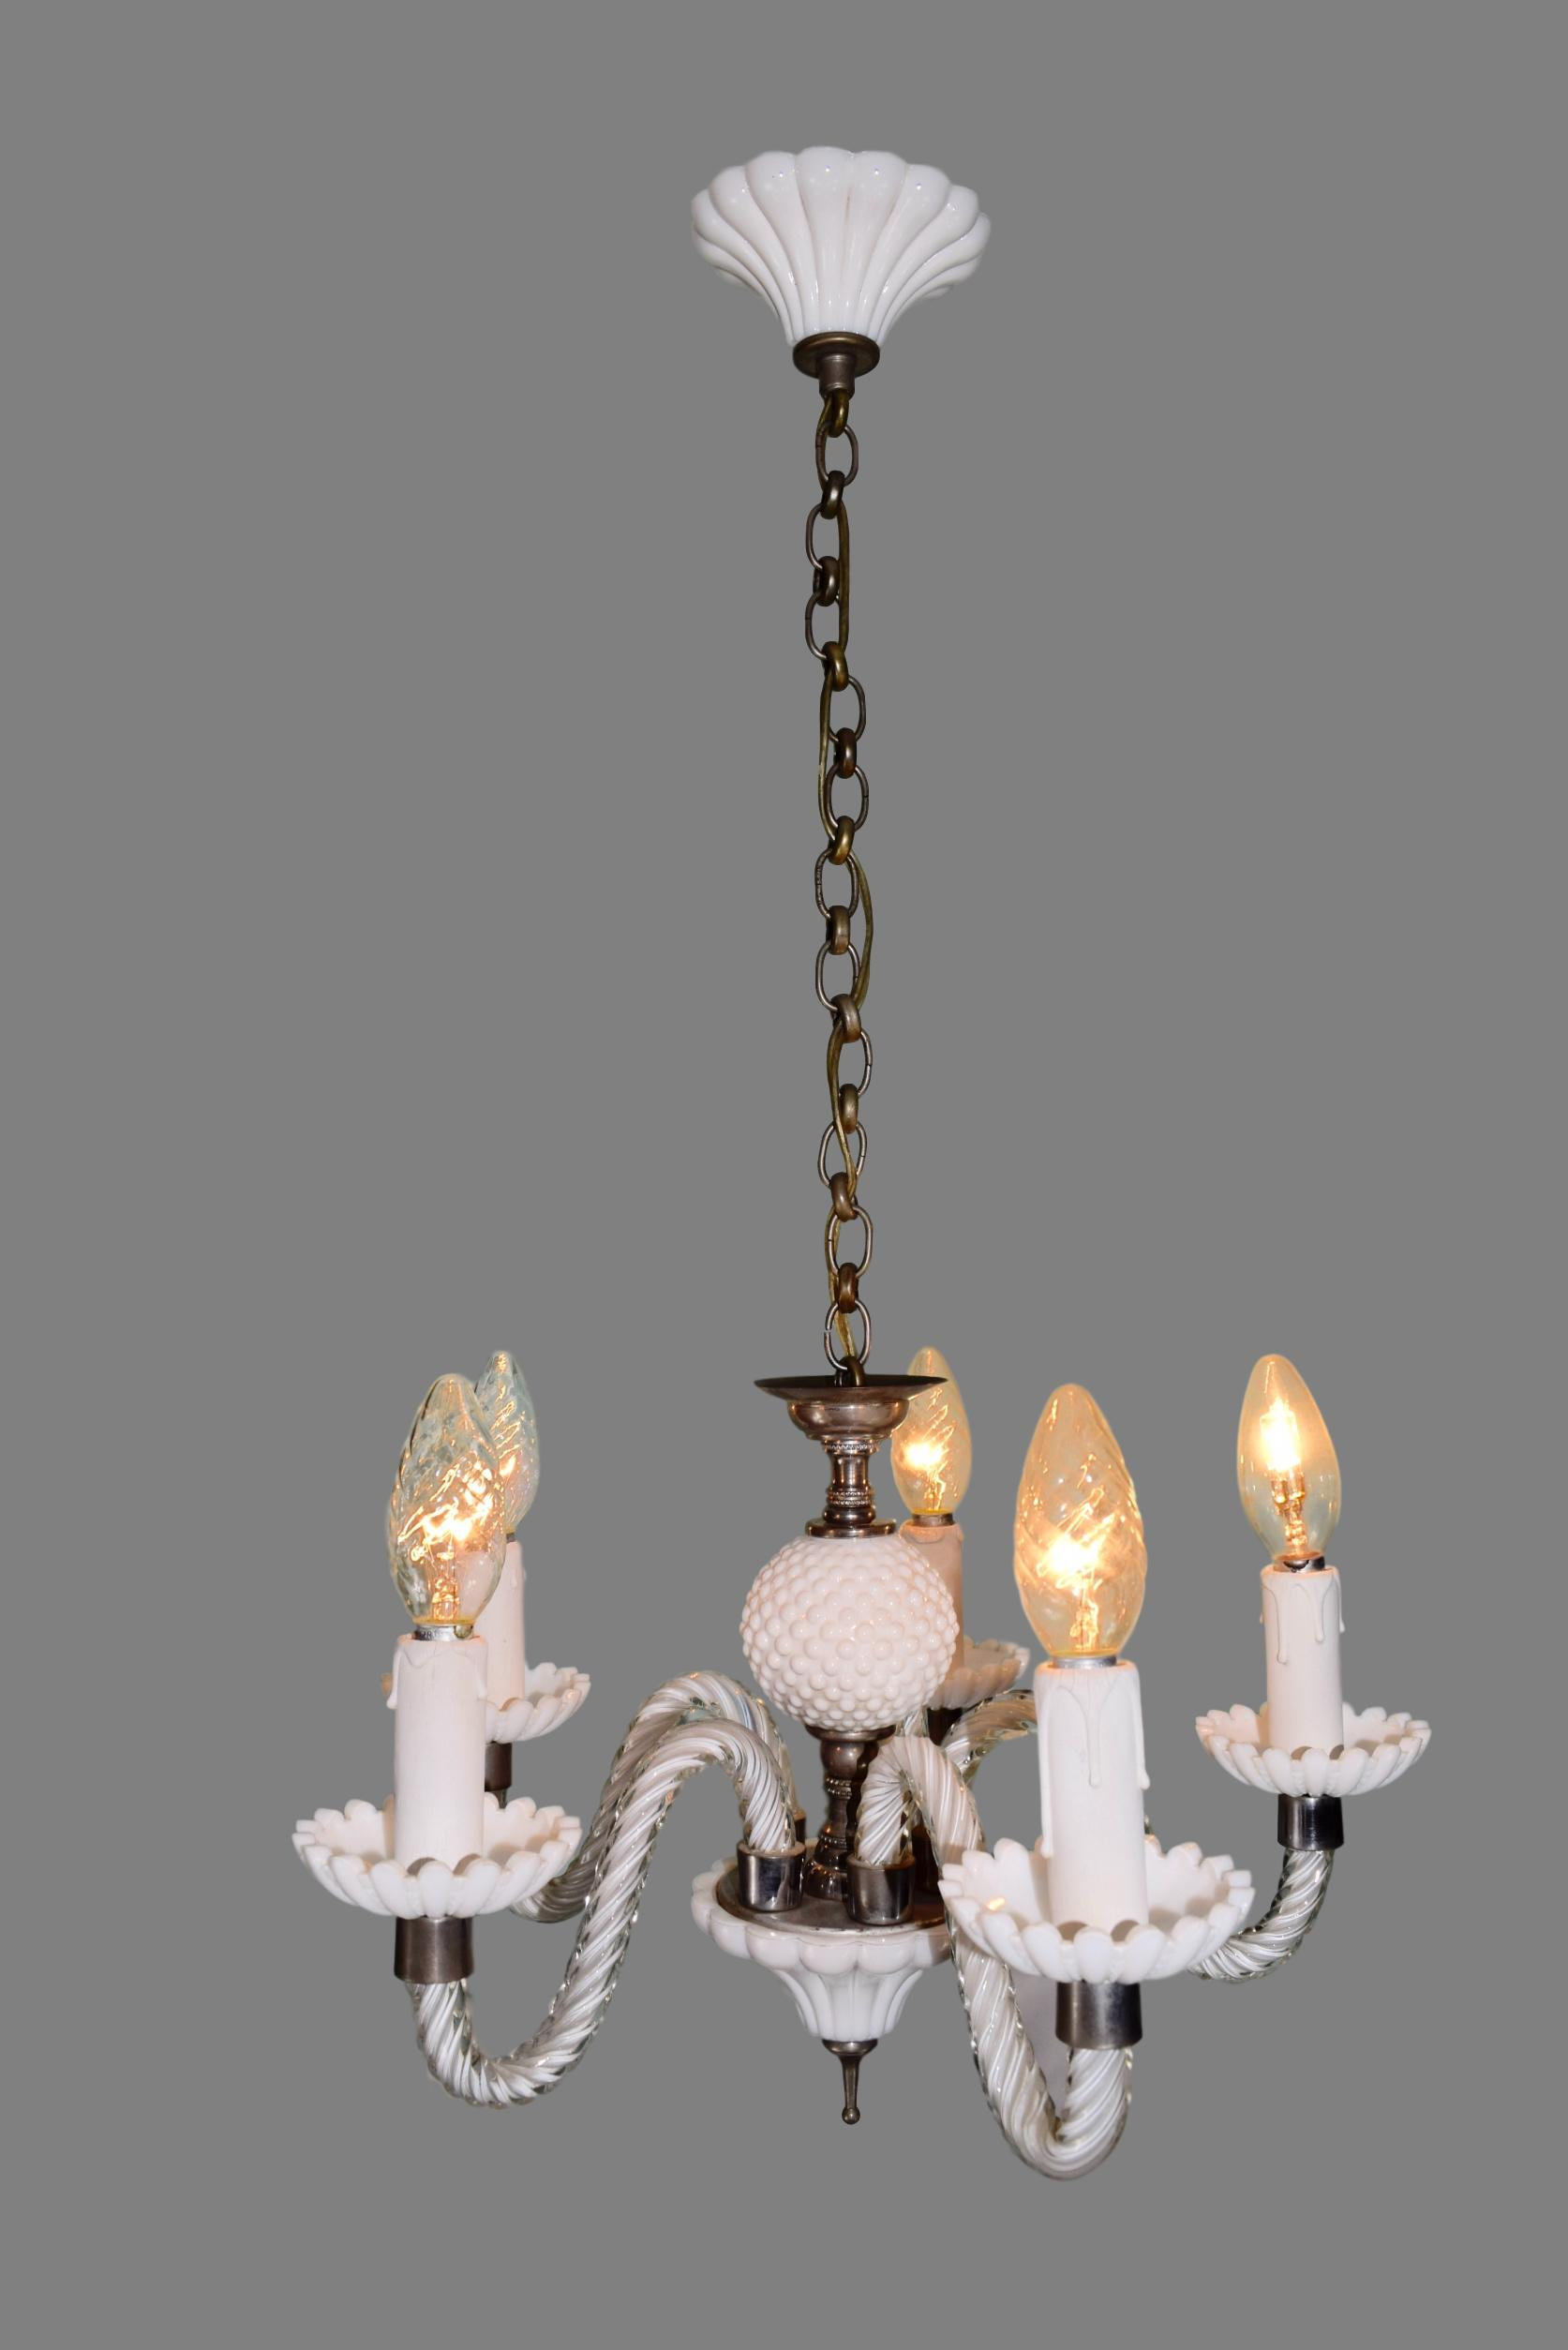 Vintage White Opaline Chandelier With 5